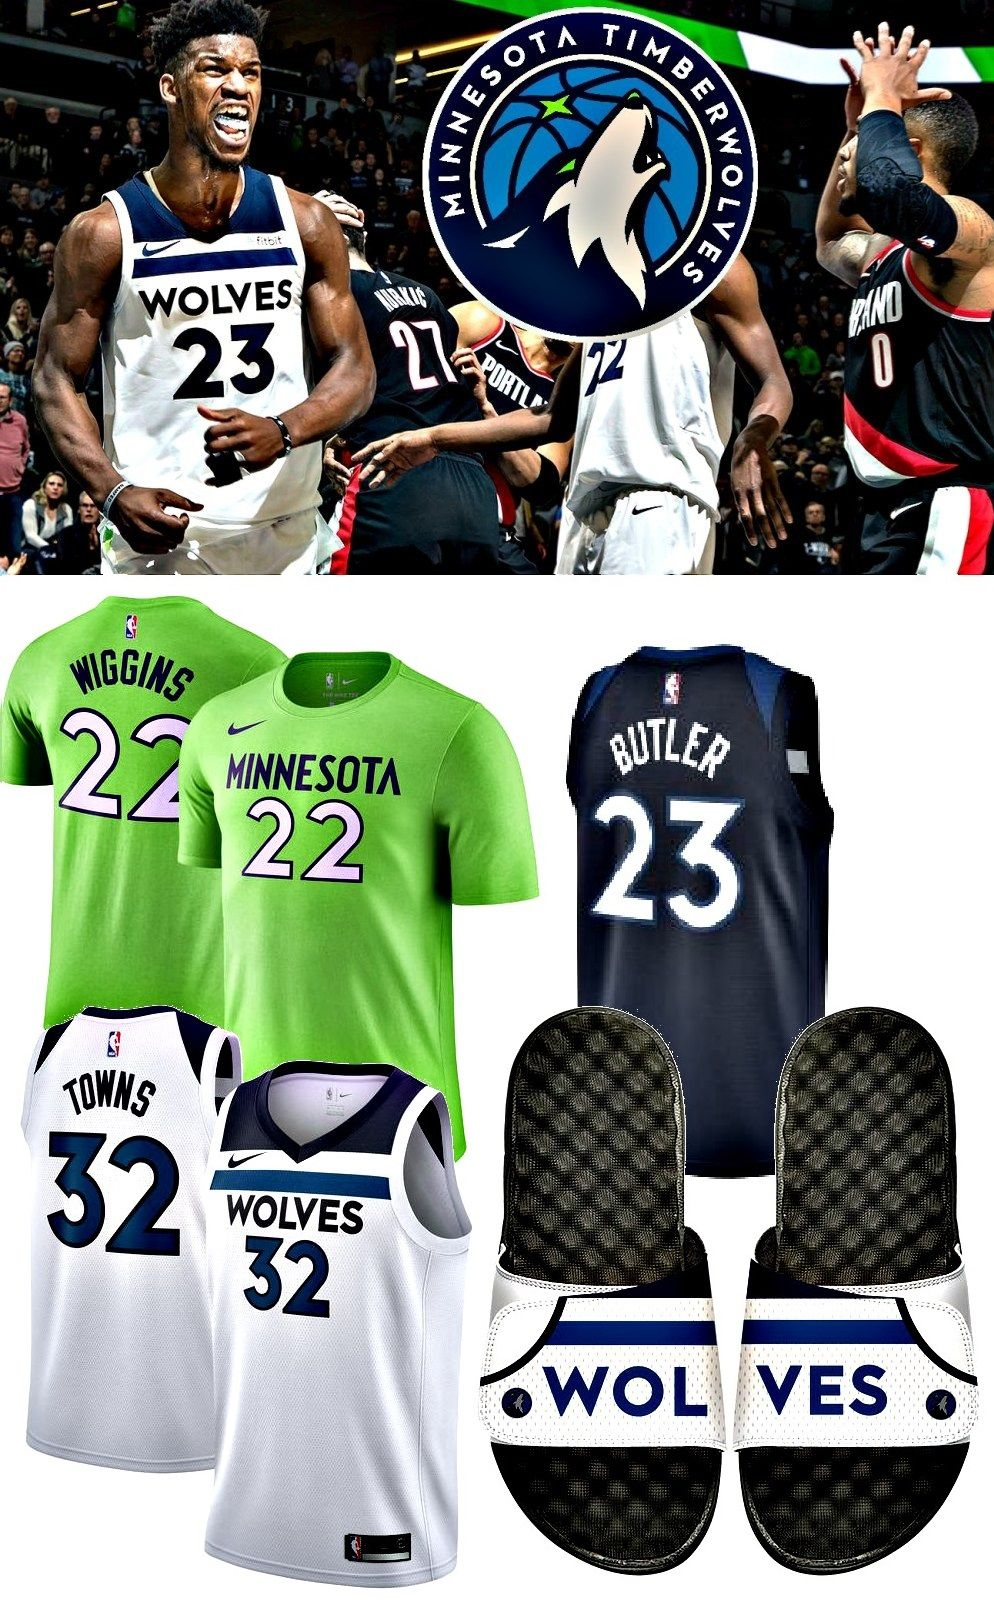 competitive price c1359 ce8c6 Minnesota Timberwolves | Apparel | Minnesota timberwolves ...